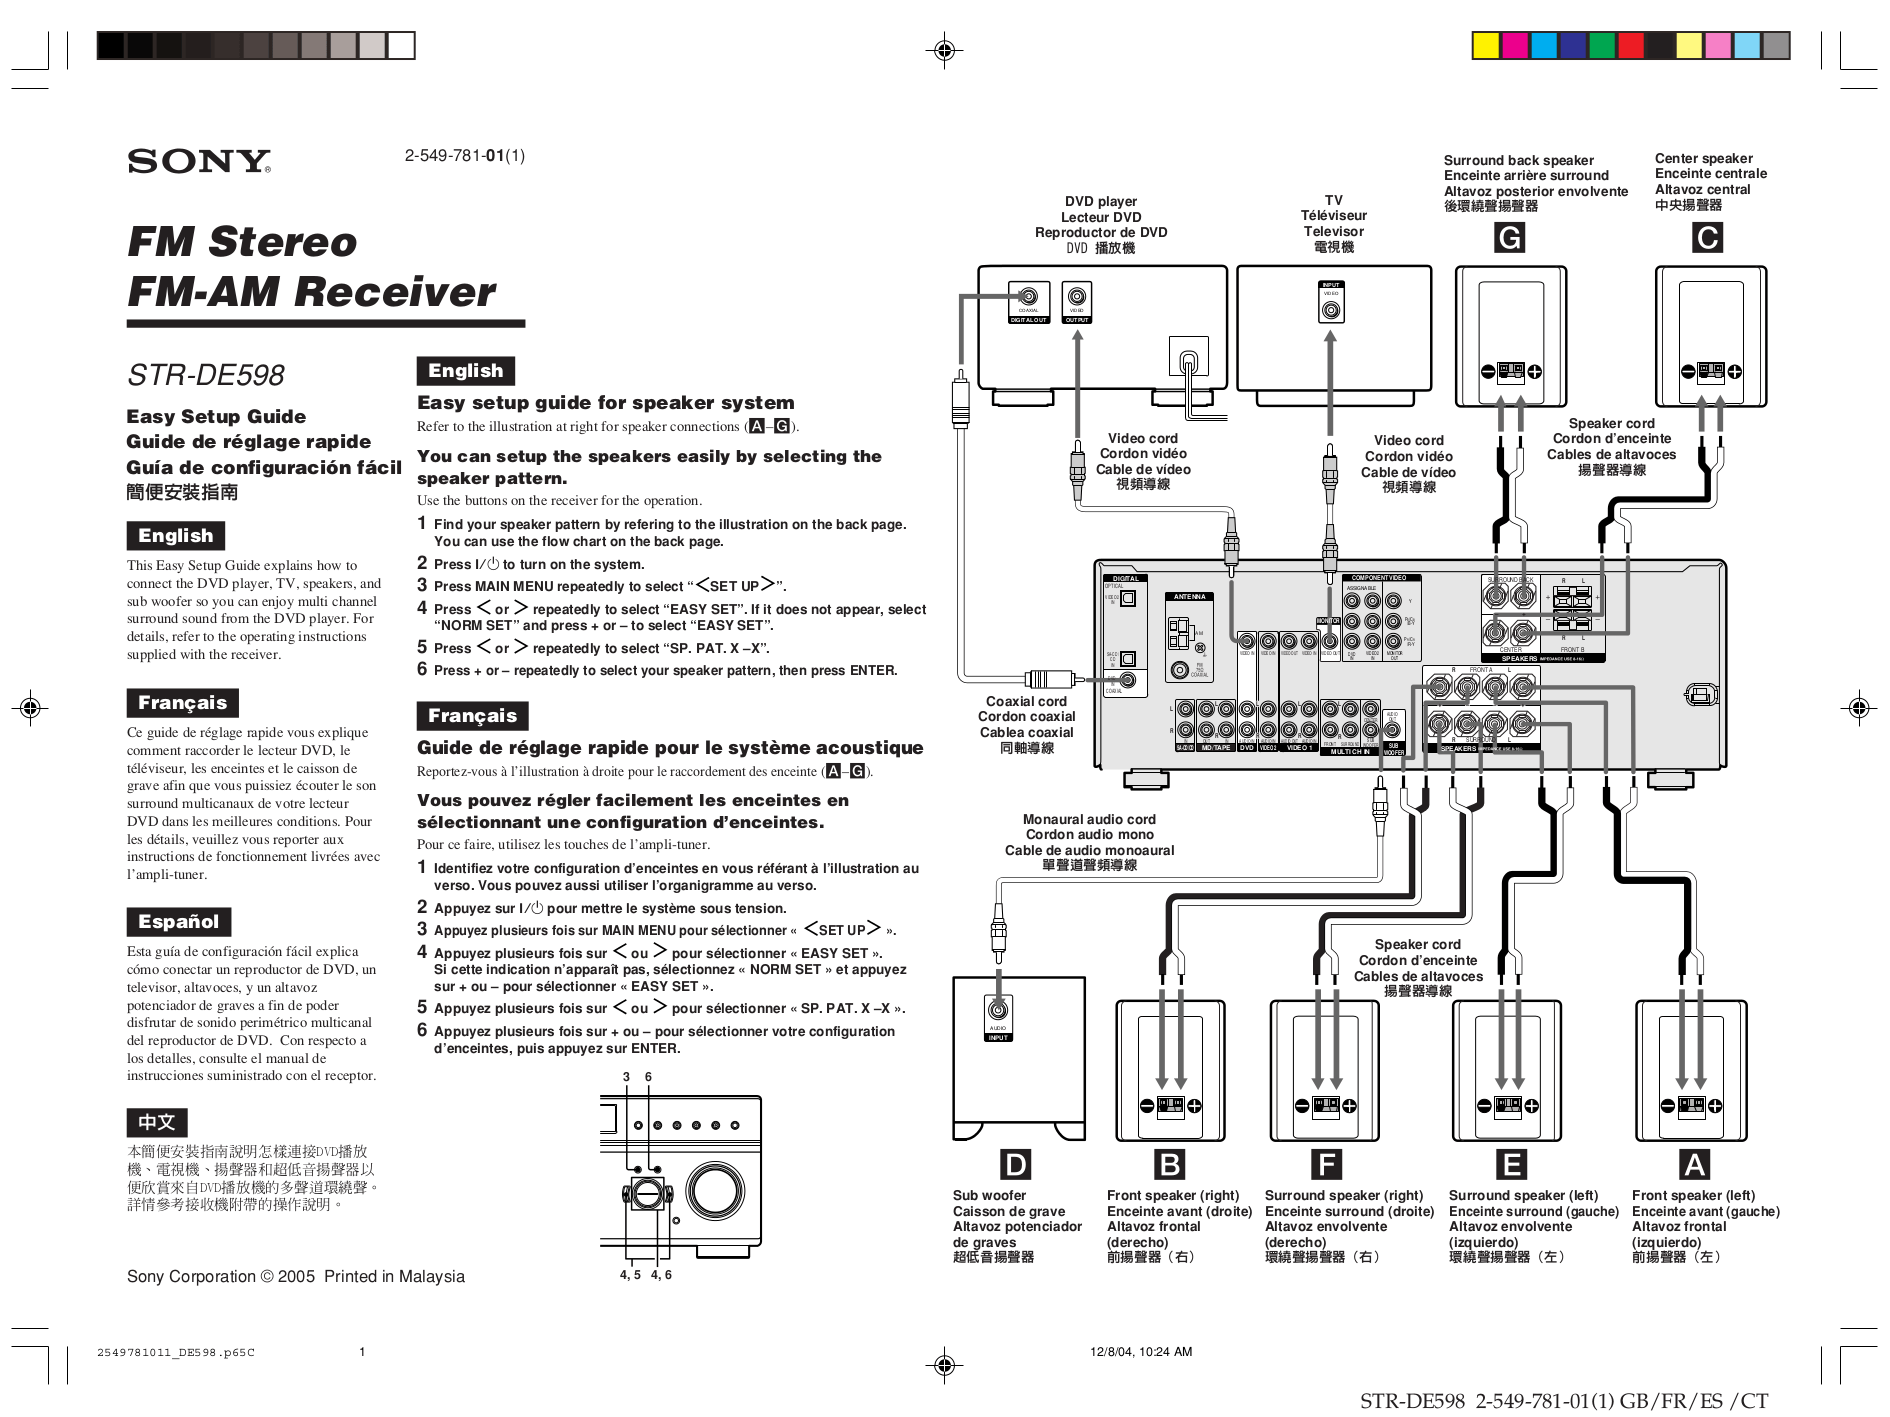 SONY STR-DE598 MANUAL PDF